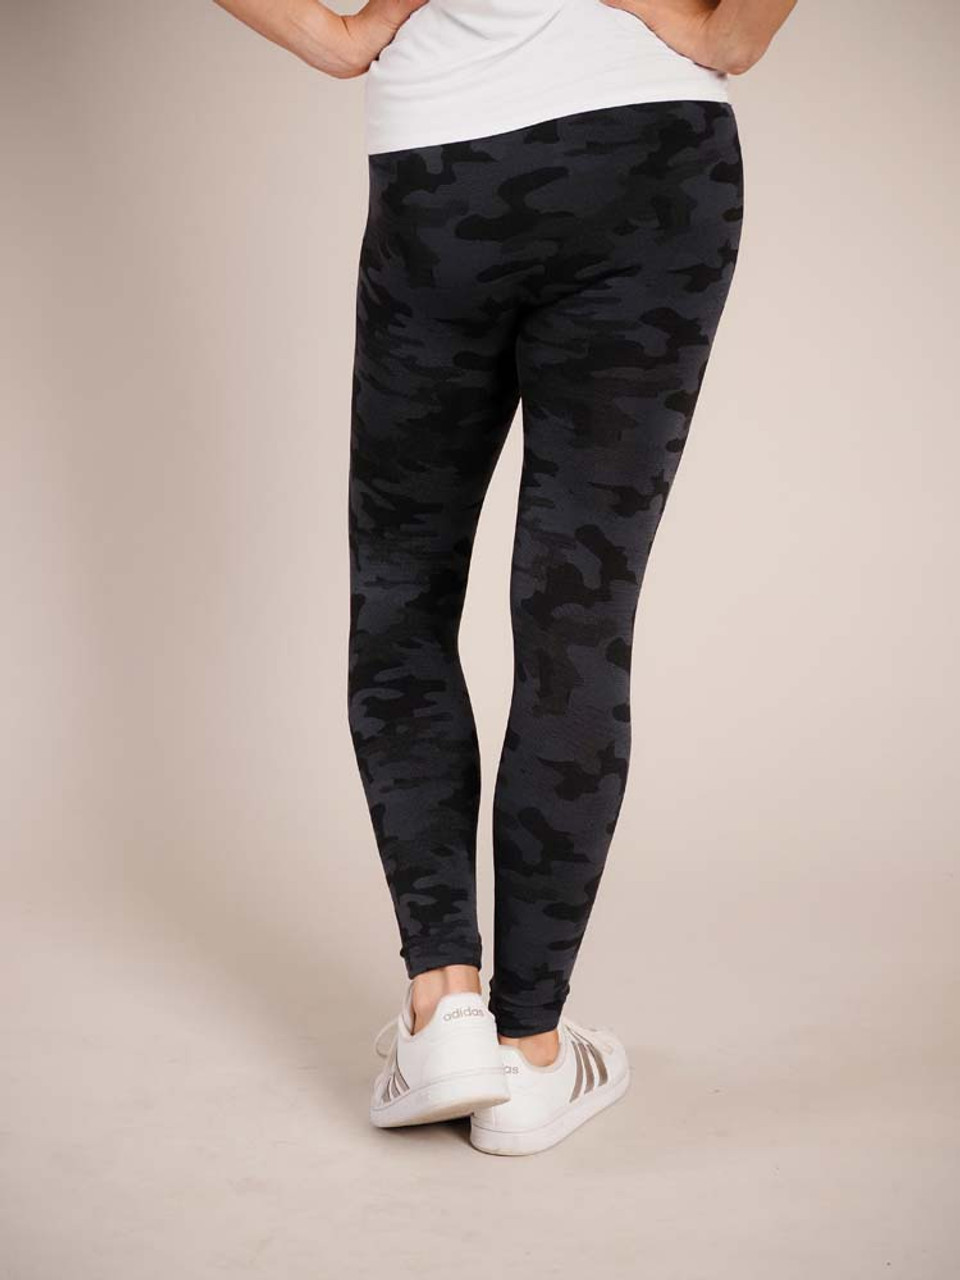 """Camo Comfortable and versitable fleece-lined leggings, breathable fabric, smooth mid-rise fit, seamless, flattering 4"""" waistband, full length cut with banded ankle"""